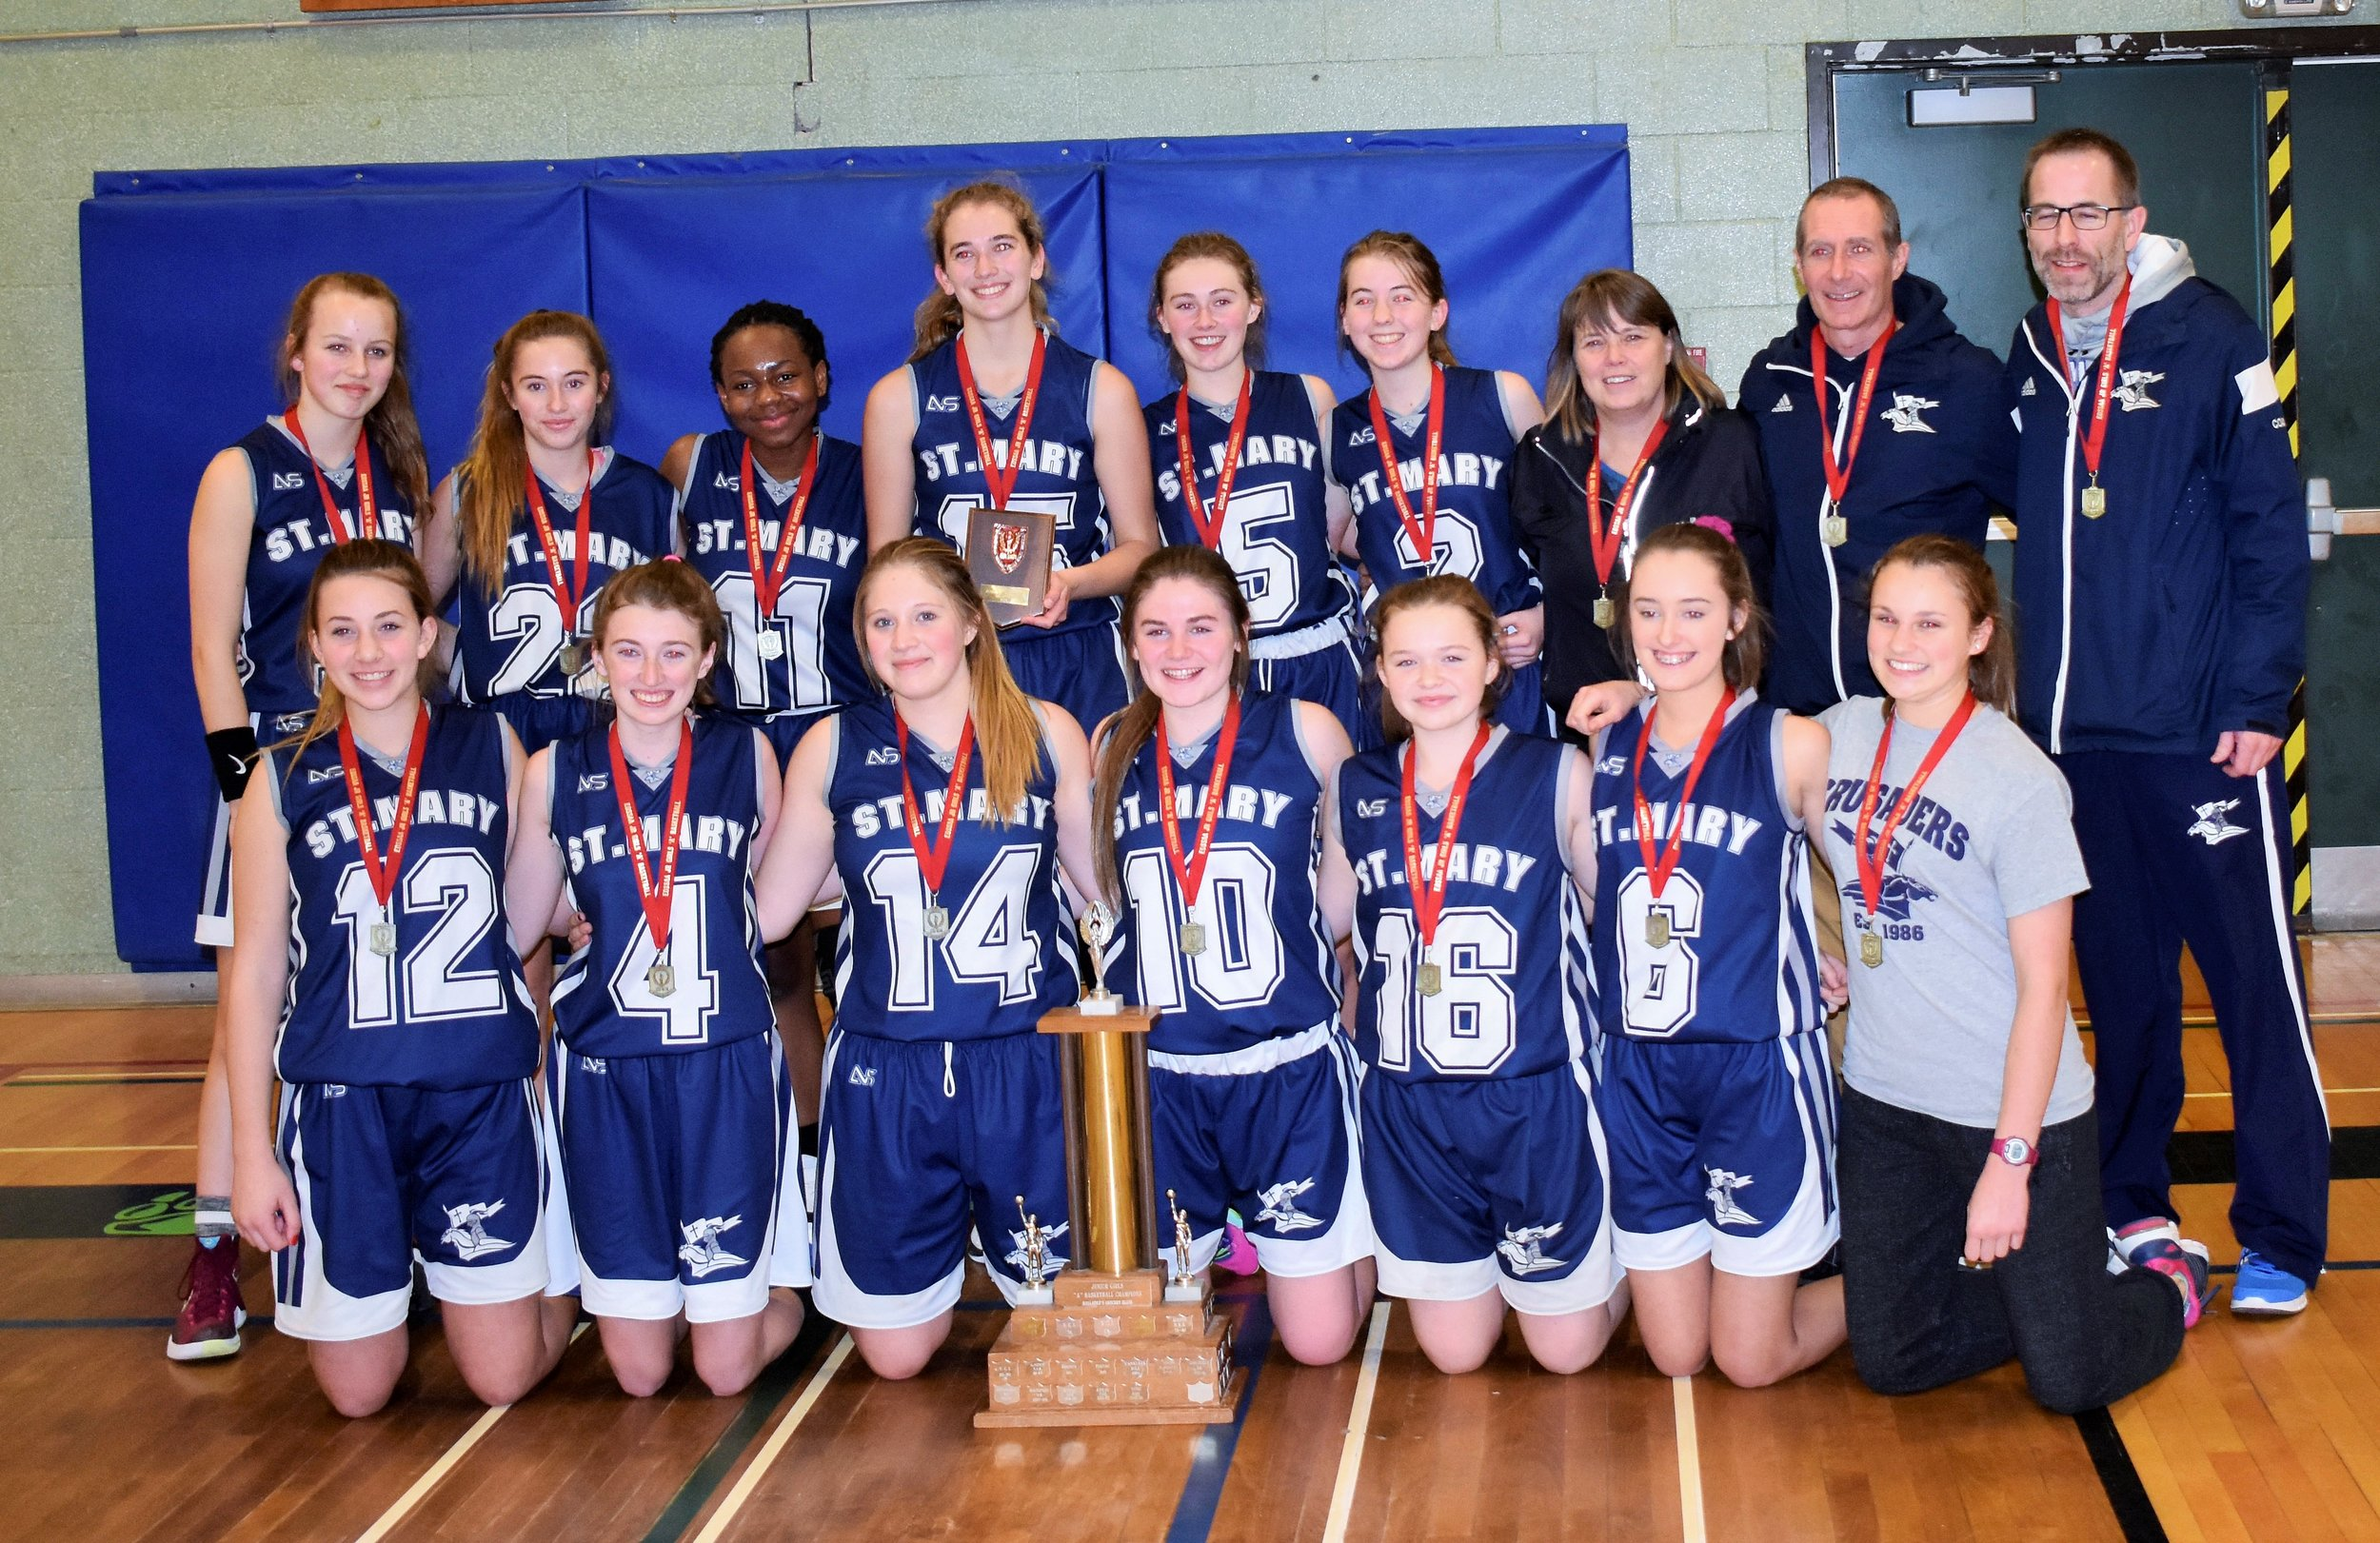 St. Mary EOSSAA Champs 17-18